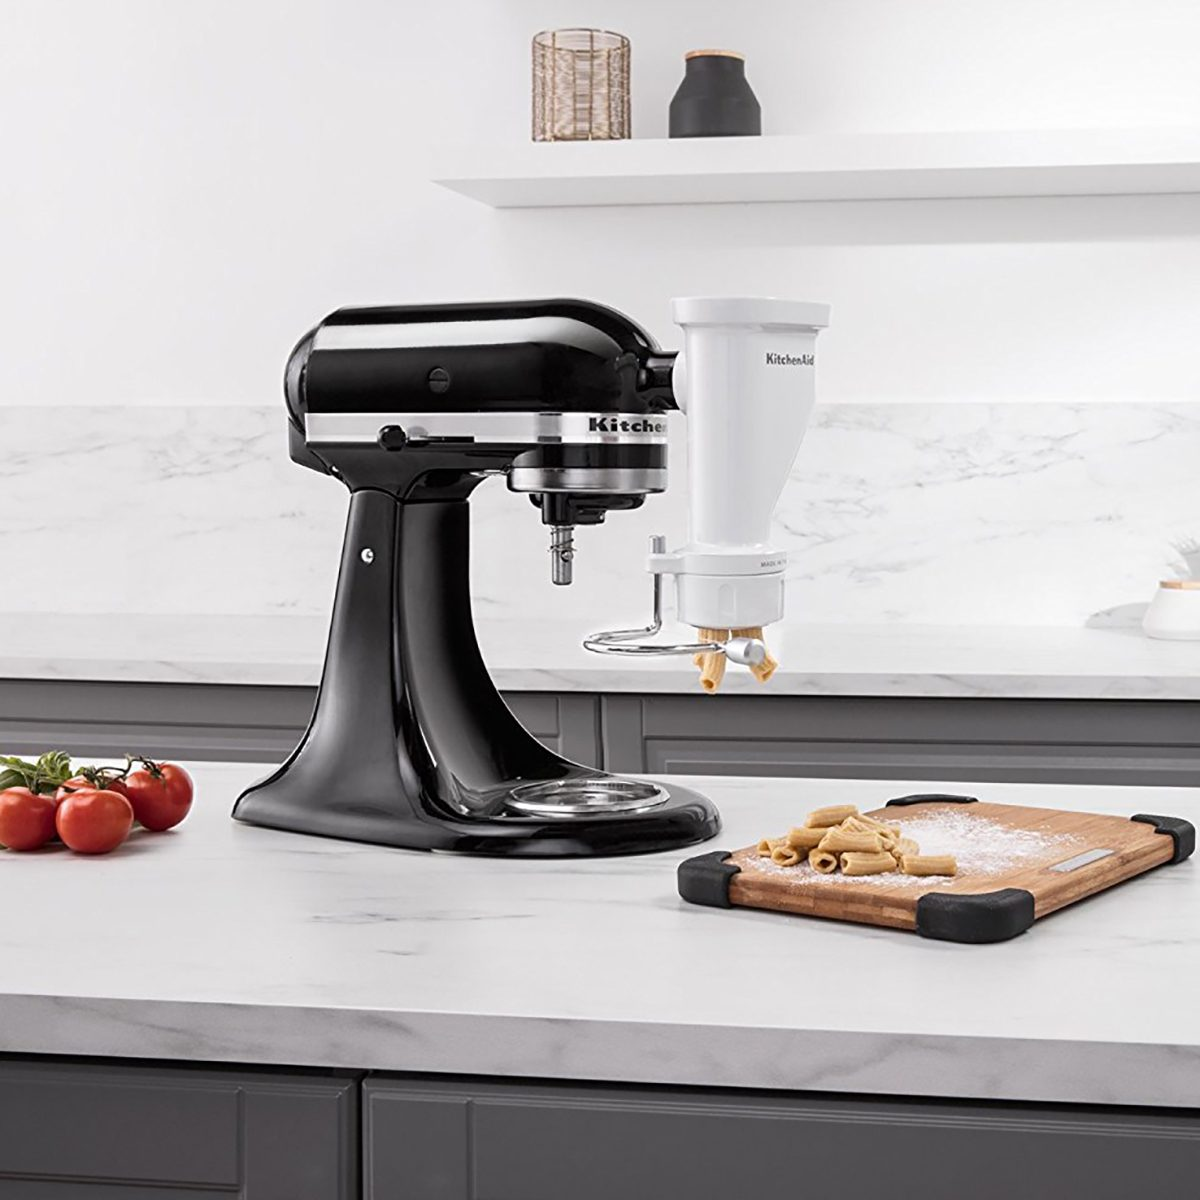 The 10 Best KitchenAid Attachments You Can Buy on Amazon | Taste of Best Price Kitchenaid Pasta Attachment on kitchenaid attachment replacement parts, kitchenaid mixer attachments, kitchenaid noodle attachment, kitchenaid attachments on sale, kitchenaid stand attachments, kitchenaid accessories prices, kitchenaid spaghetti cutter, kitchenaid blender prices,